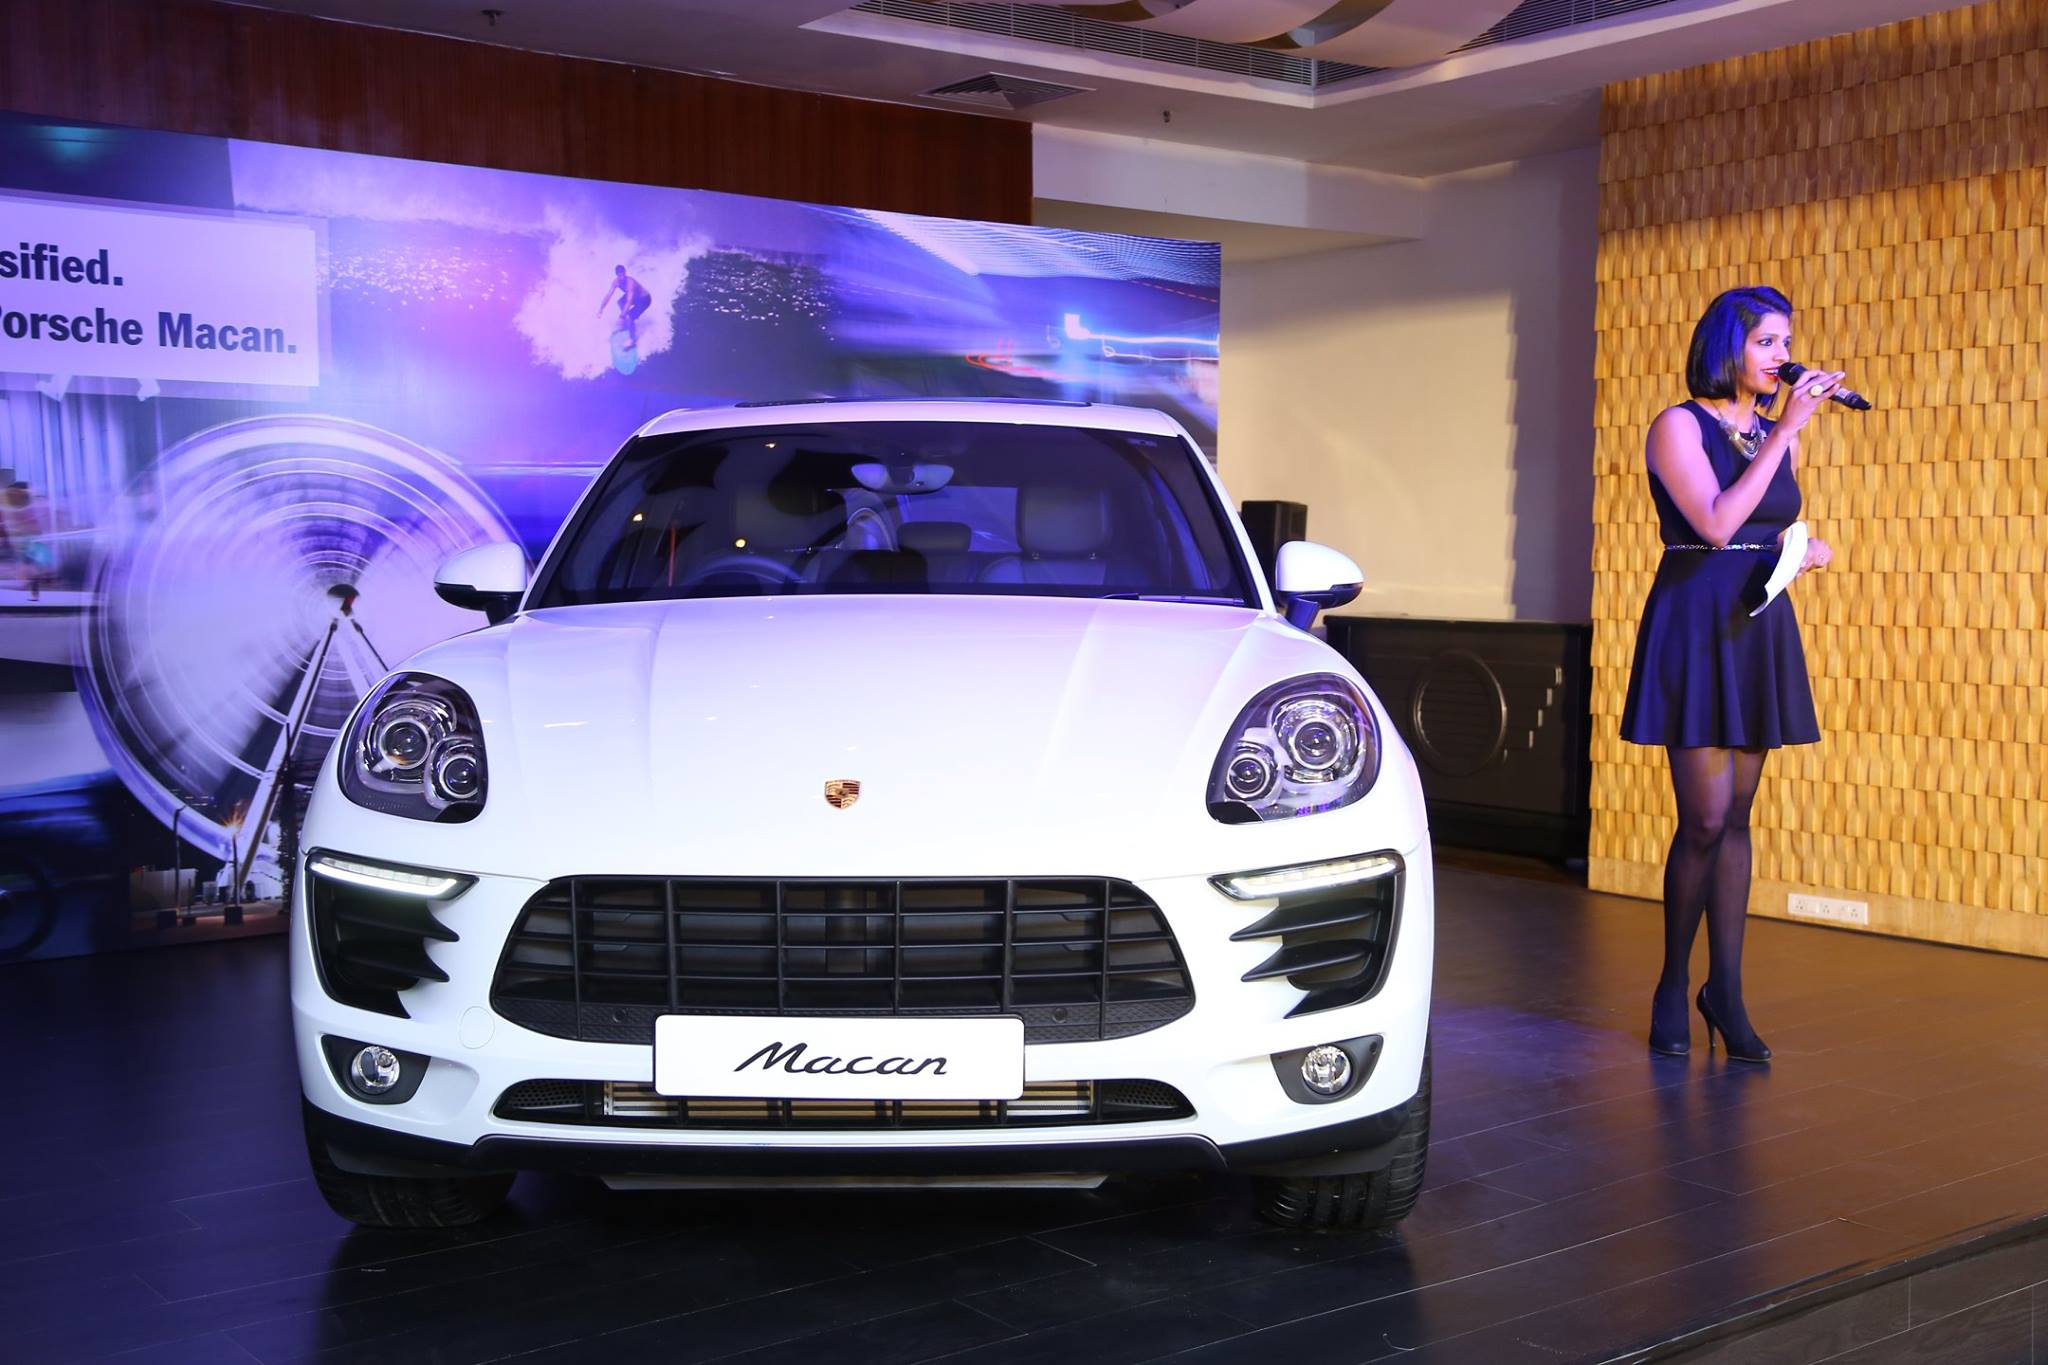 Porsche Macan 2 0l Petrol Launched In India From Rs 97 71 Lakh